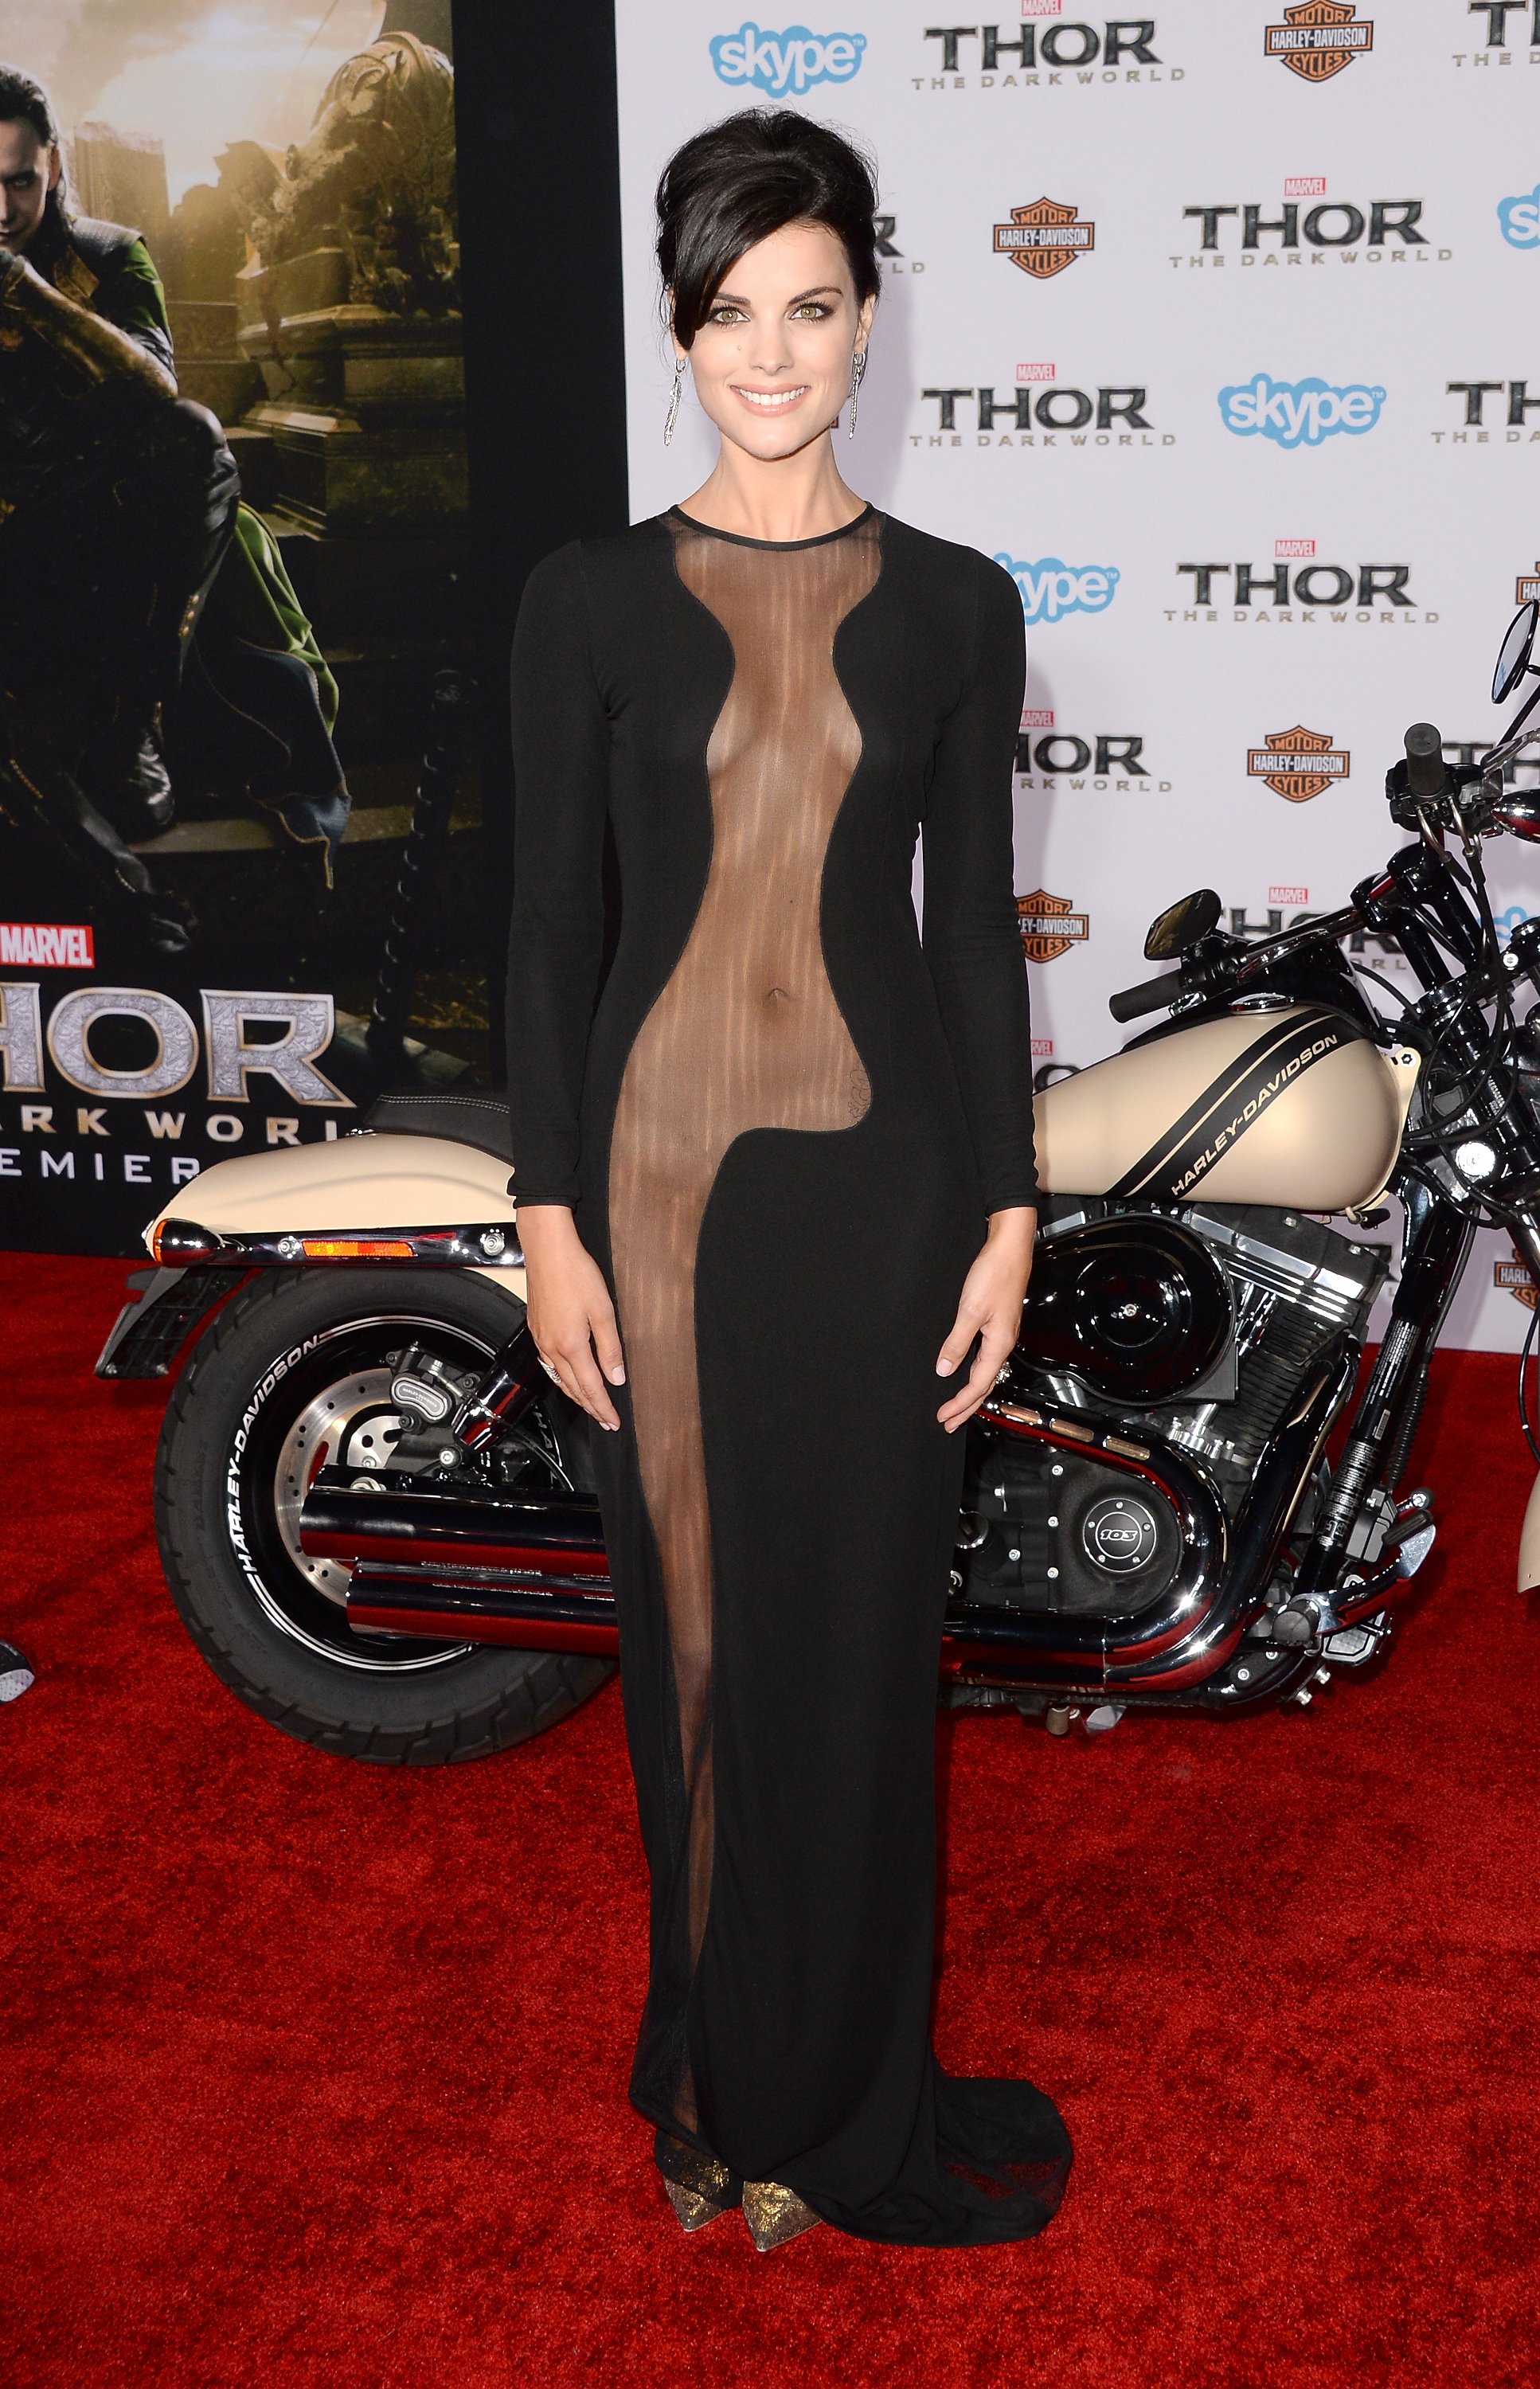 90b6539102 Jaimie Alexander s Revealing  Thor  Dress   More Celebrities With Missing  Fabric